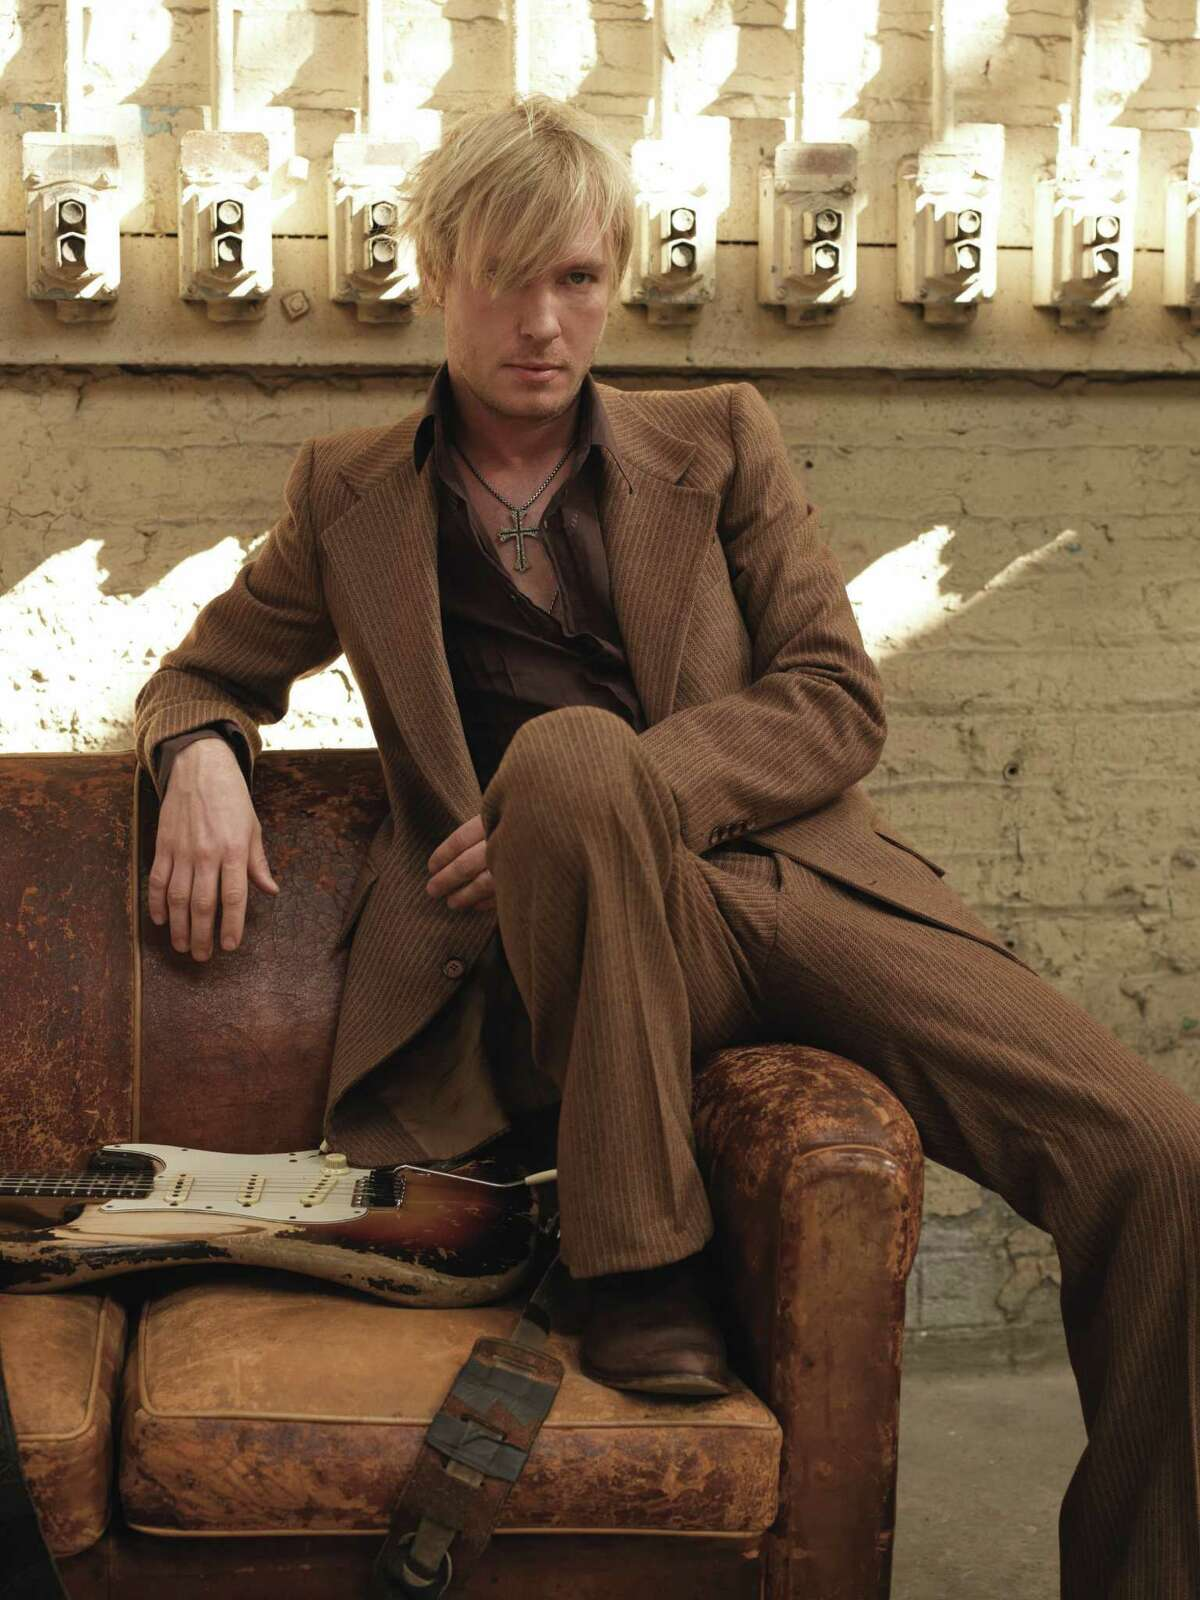 Kenny Wayne Shepherd performs at 7:30 p.m. Friday at Upstate Concert Hall in Clifton Park. Click here for more information. (Mark Seliger)